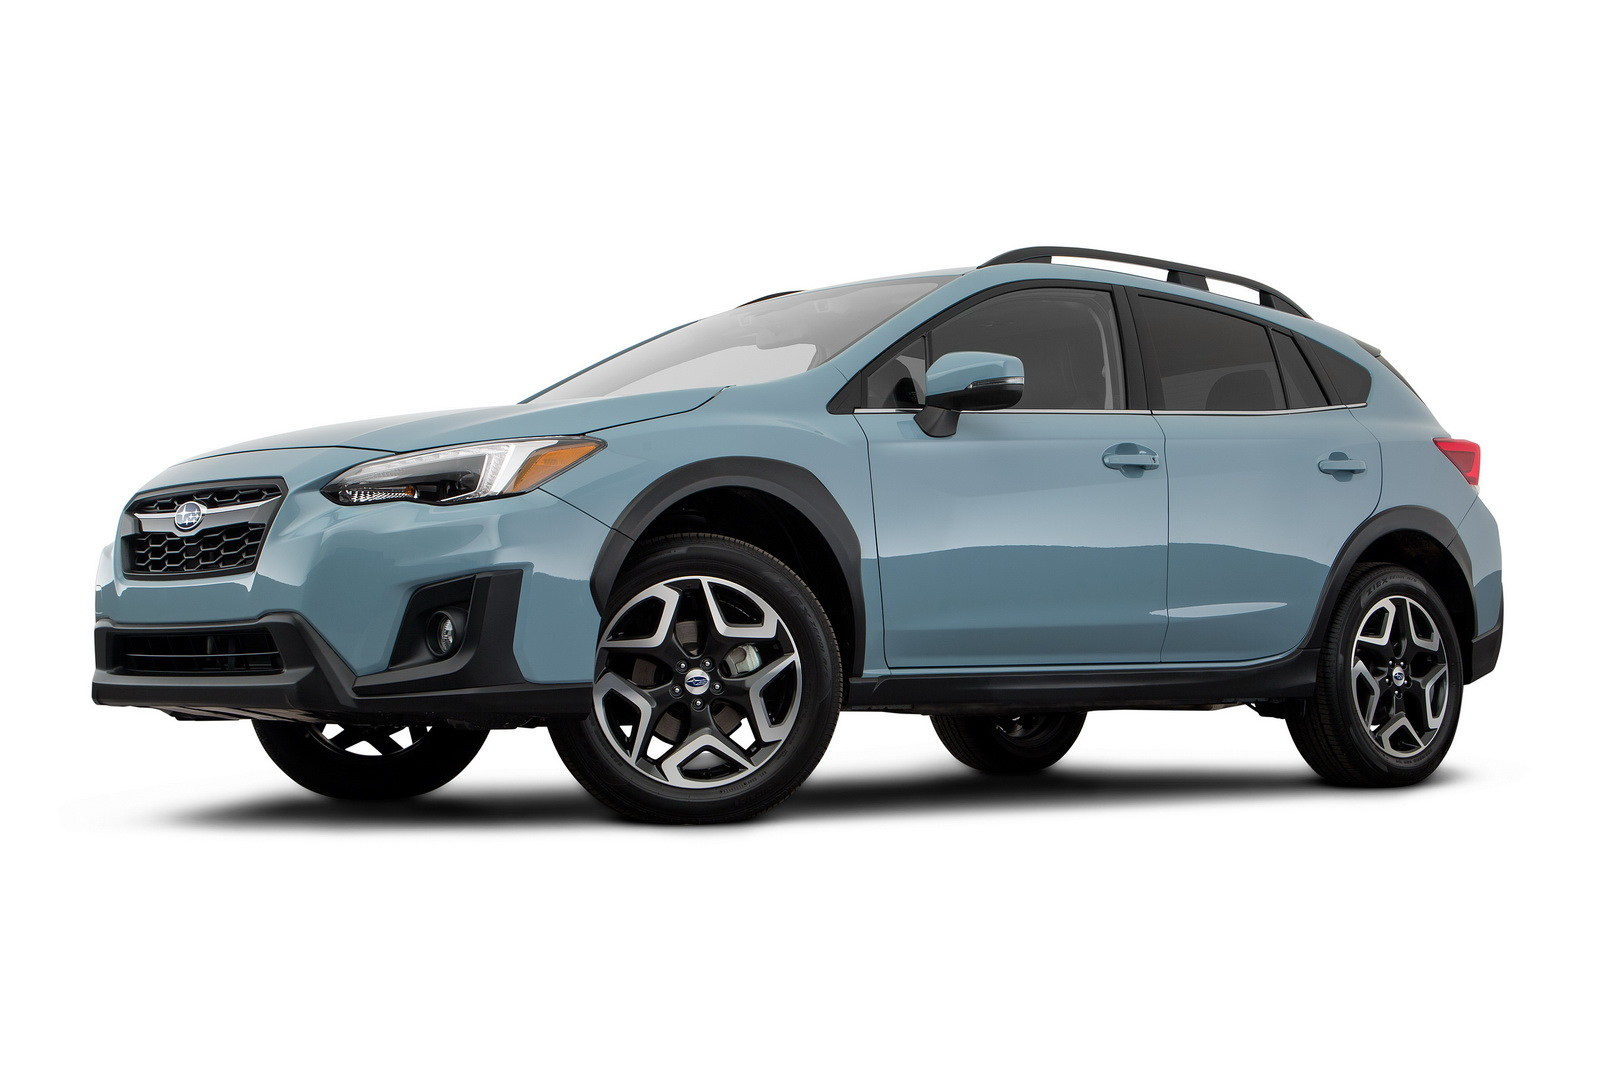 All New Xv 2018 >> Subaru Prices All-New 2018 Crosstrek From $21,795 [30 Pics]